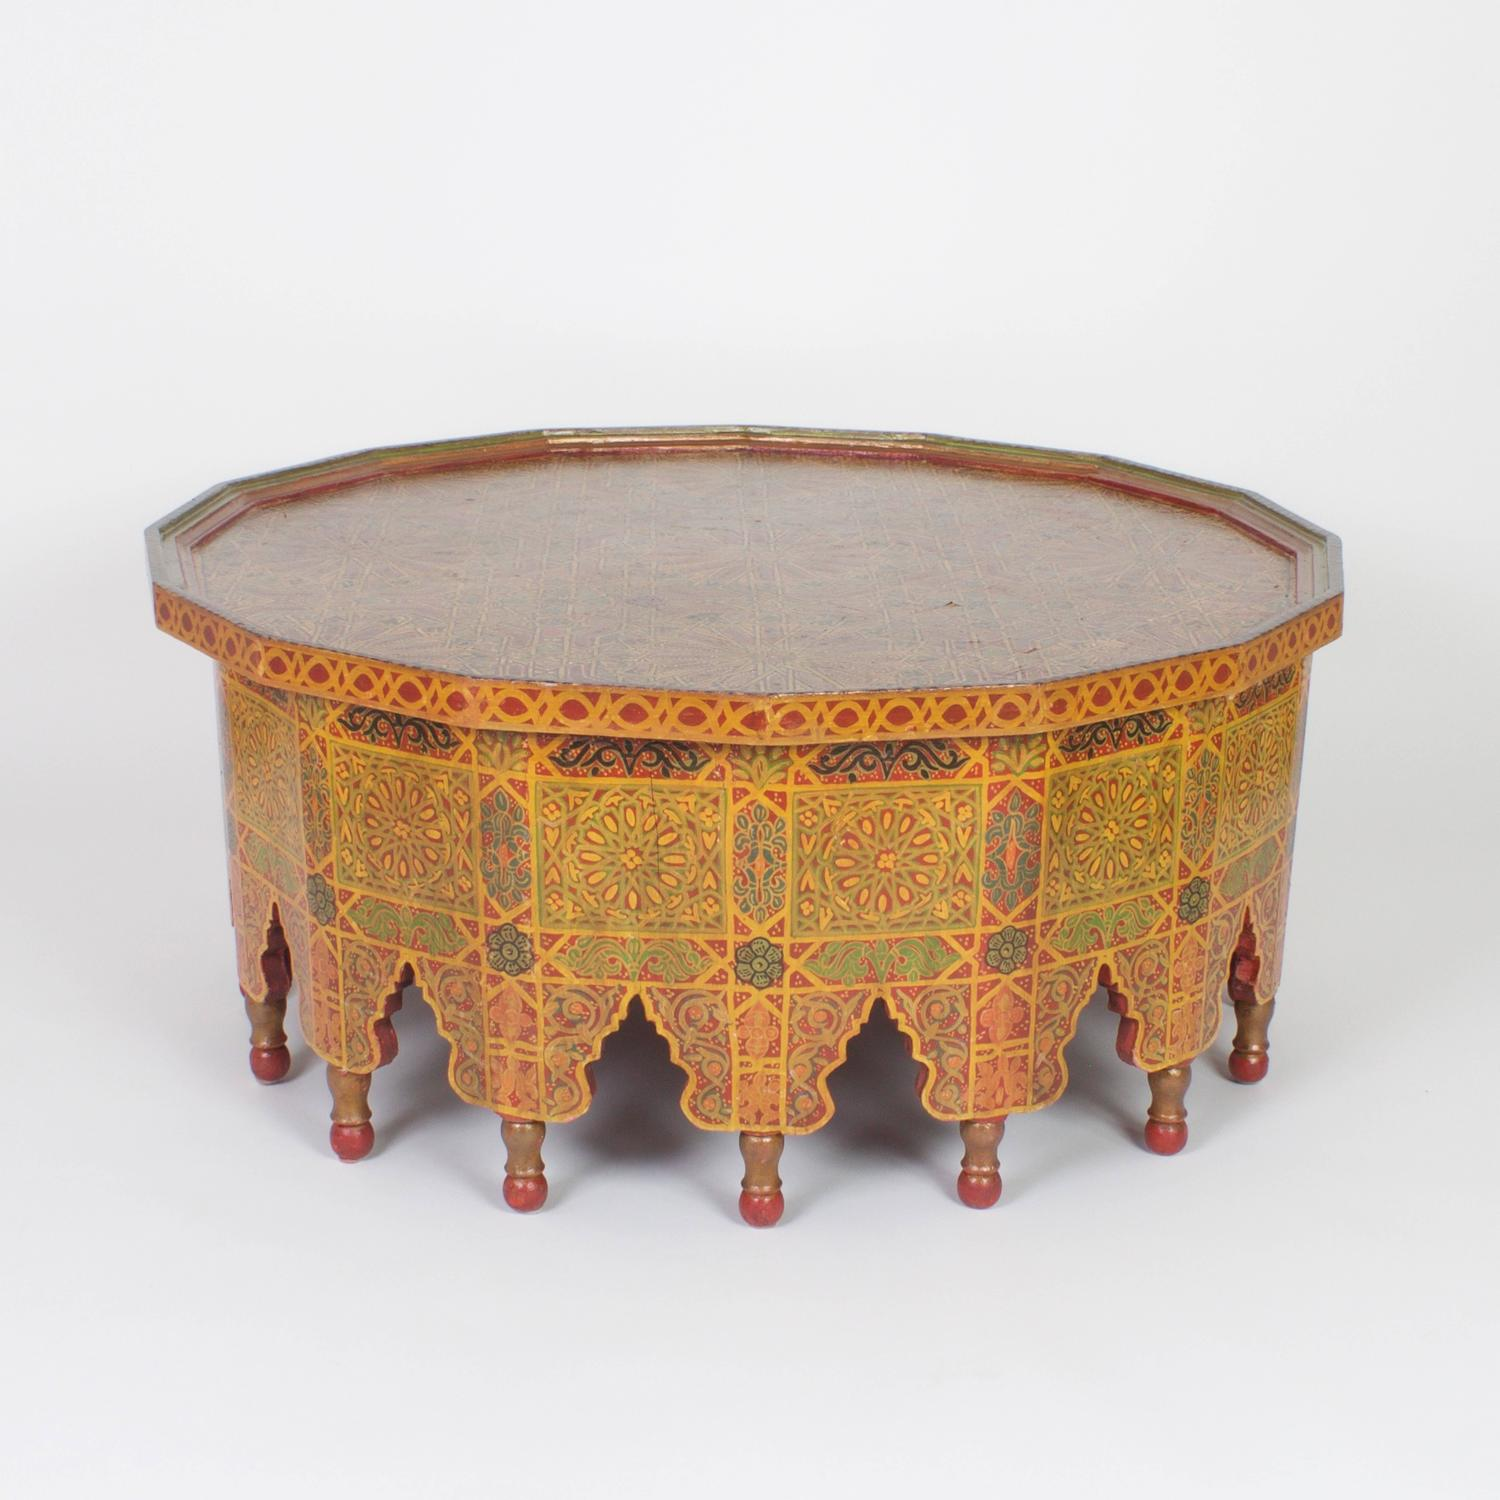 Vintage Large Hand Decorated Moroccan Cocktail Or Coffee Table For Sale At 1stdibs